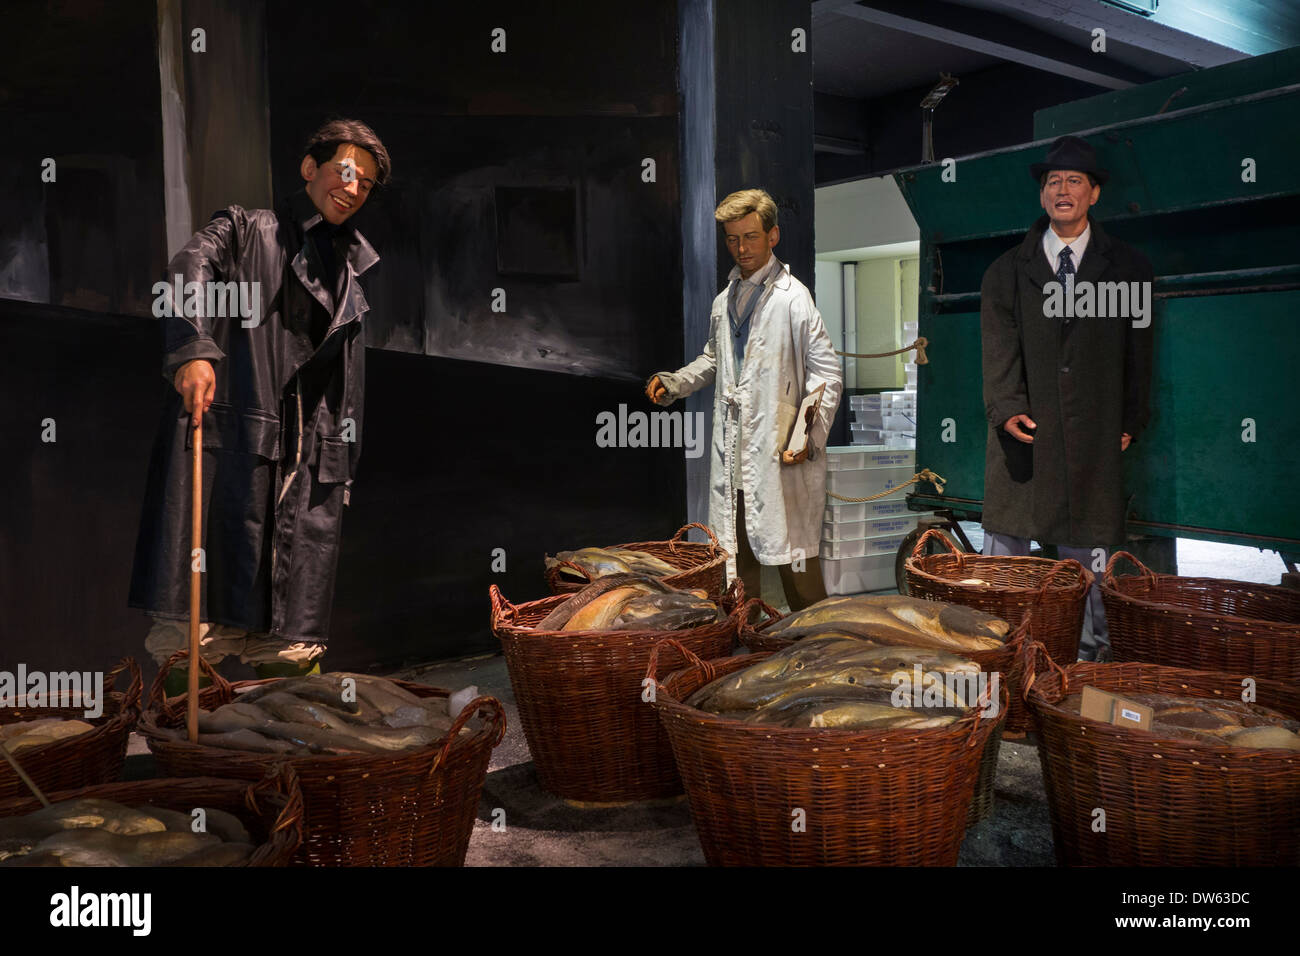 Diorama showing fish auction in fish market at the Seafront Maritime Theme Park in Zeebrugge, Belgium - Stock Image